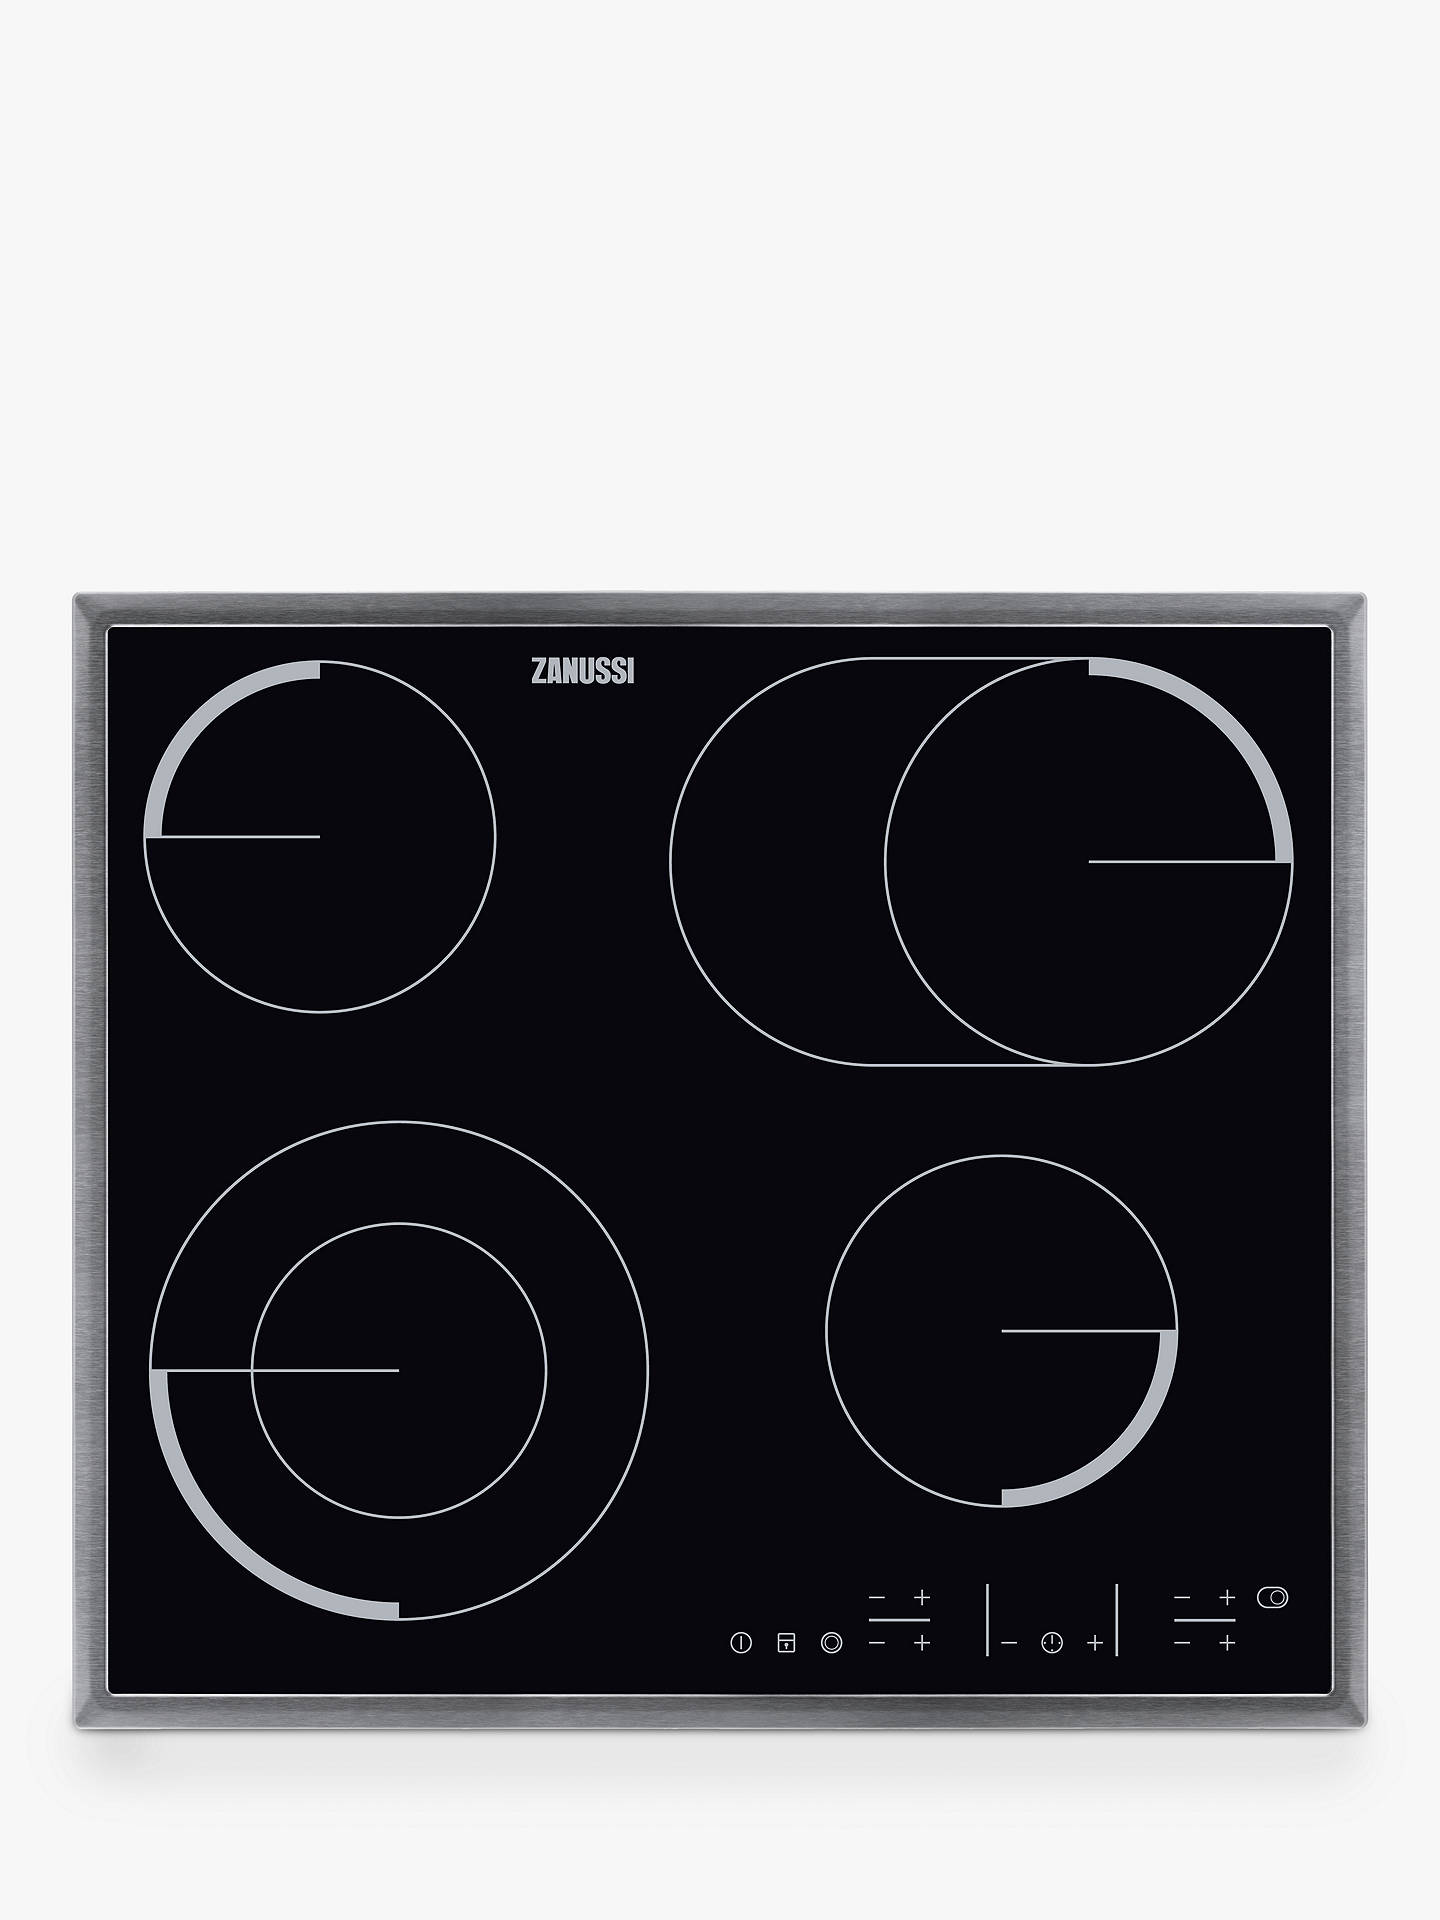 zanussi zev6646xba built in ceramic hob black at john lewis partners rh johnlewis com